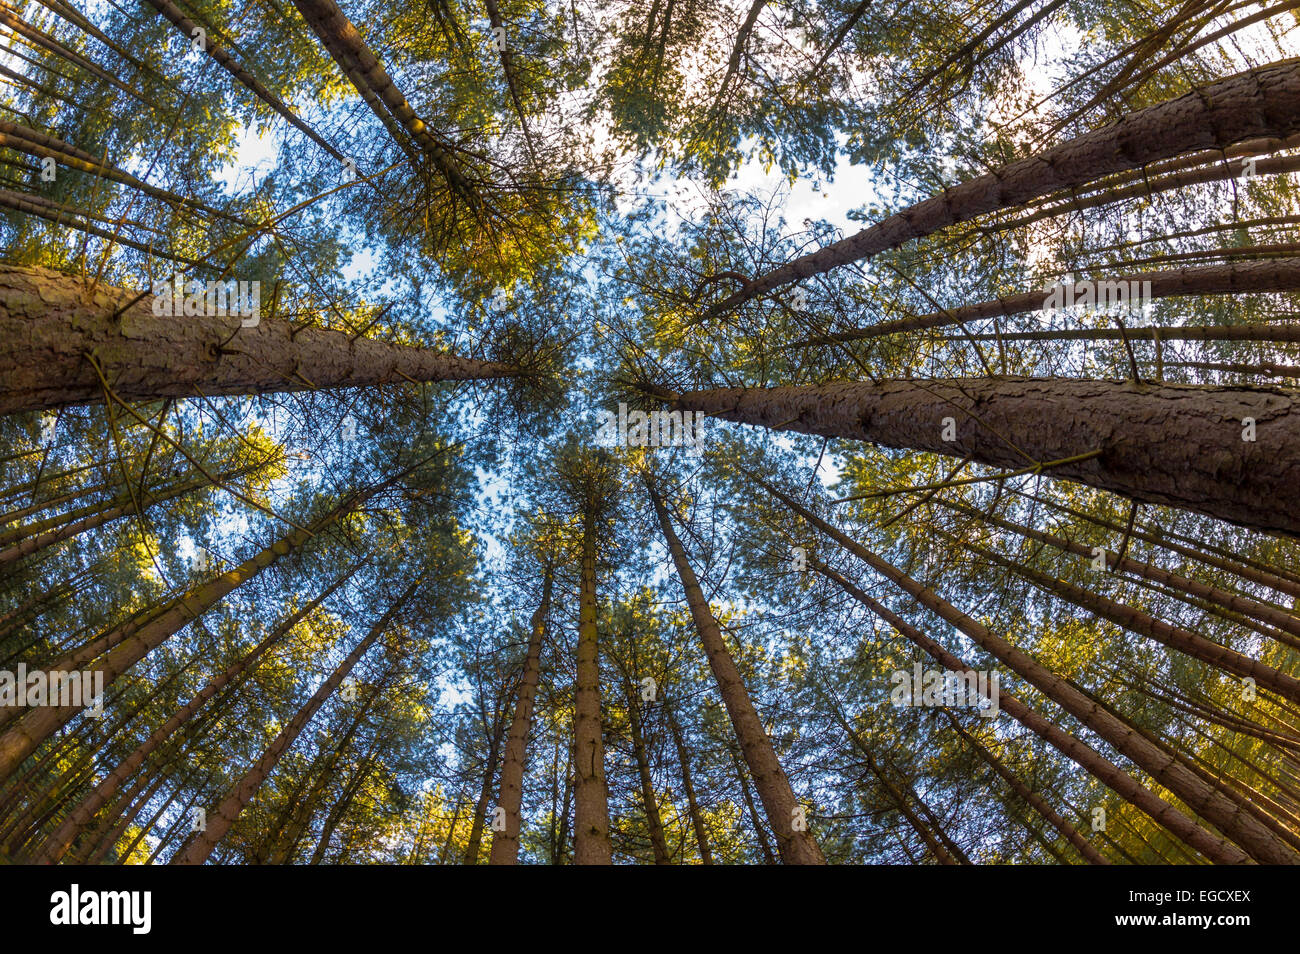 Tall conifers or pine trees in Sherwood forest, Nottinghamshire, England. - Stock Image